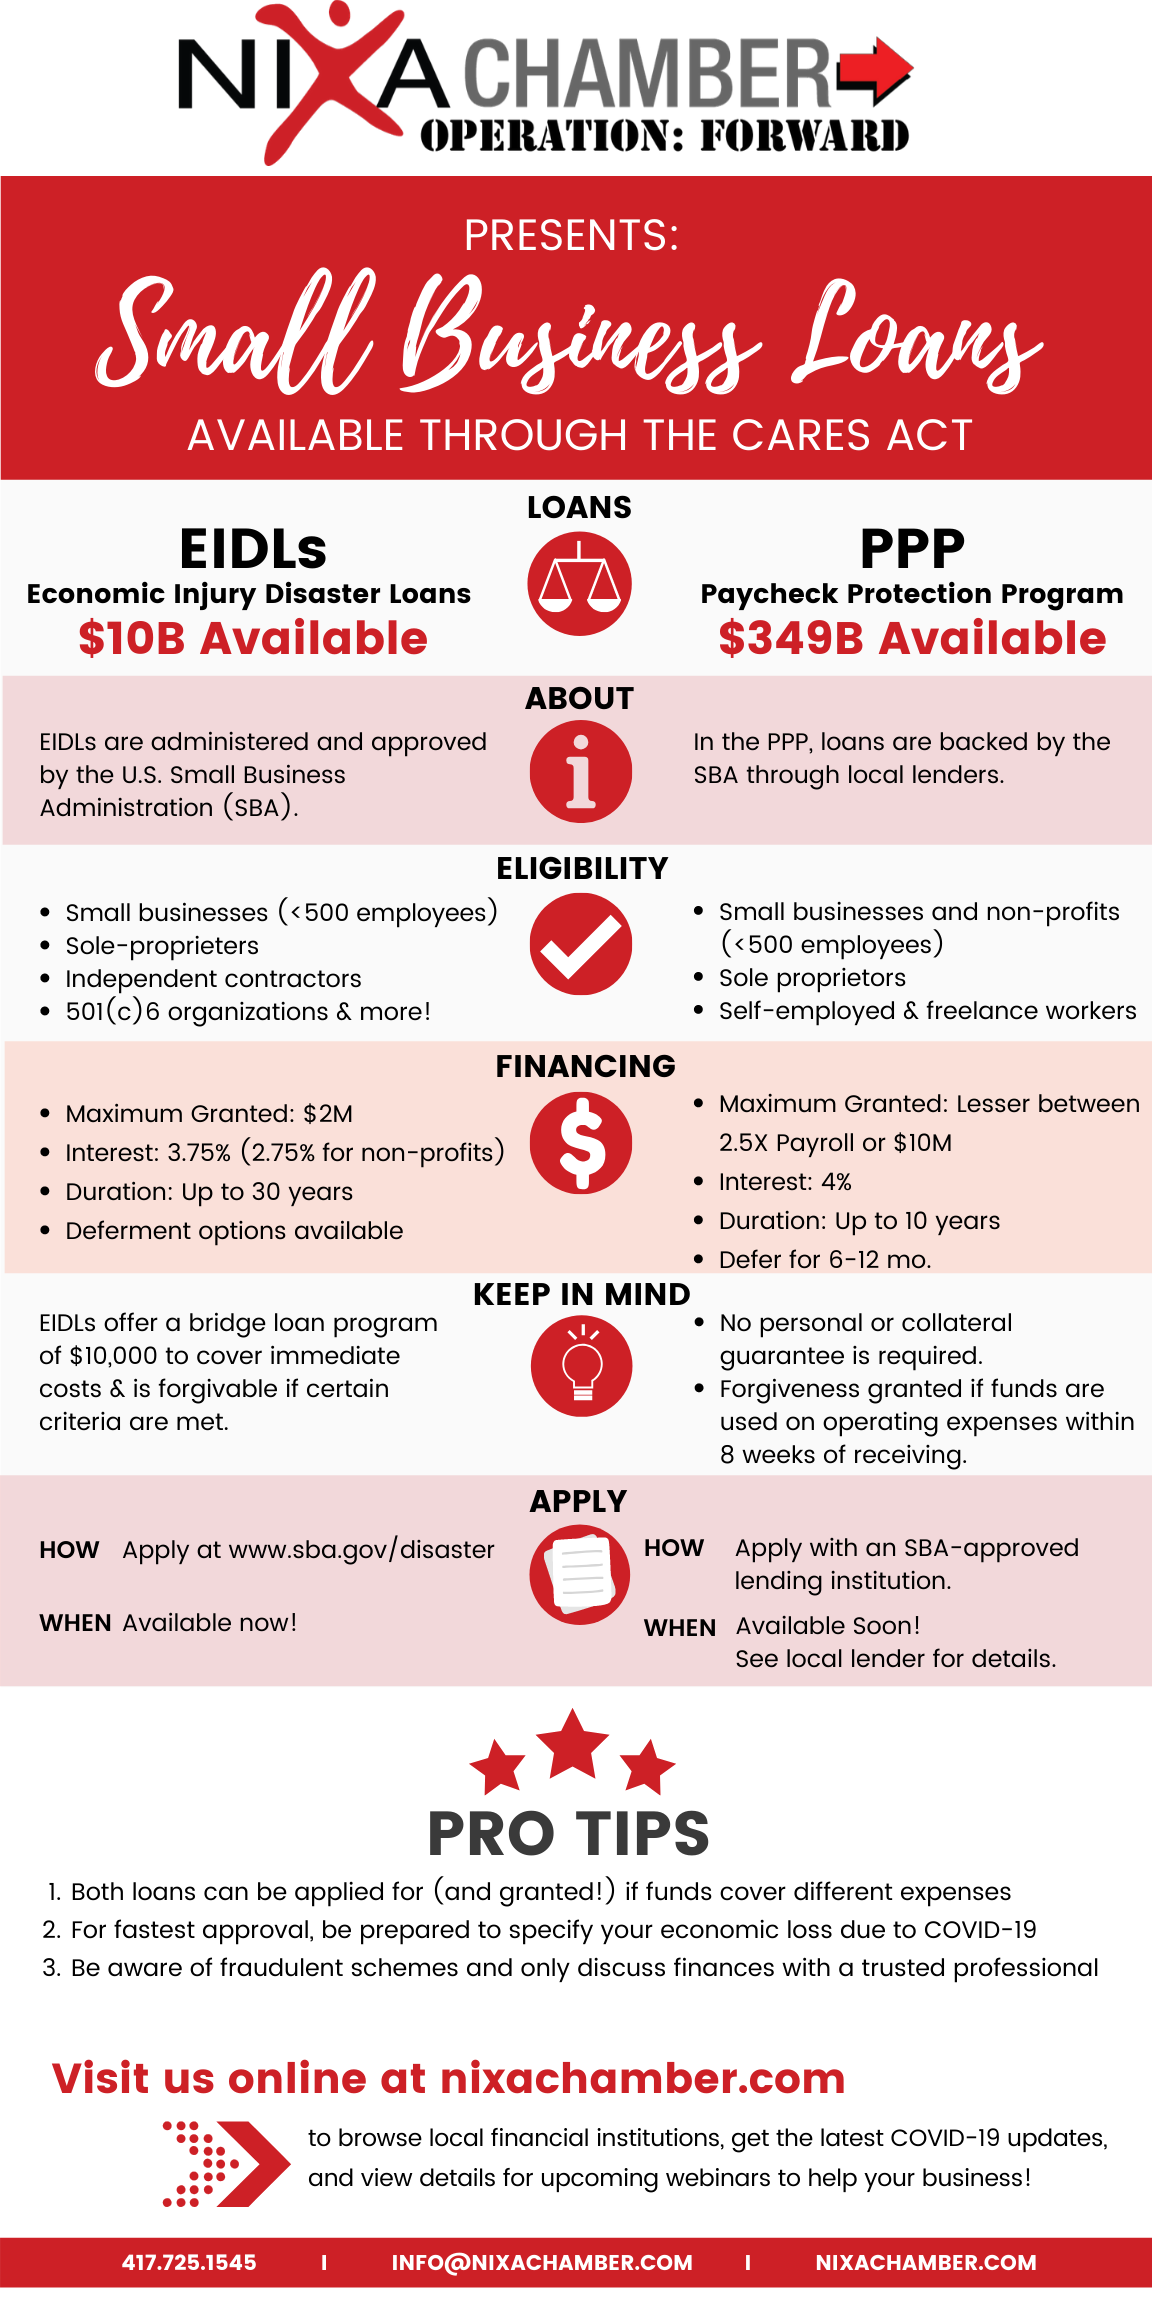 Copy of TEMPLATE FOR CARES ACT LOANS COMPARISON INFOGRAPHIC & LETTER